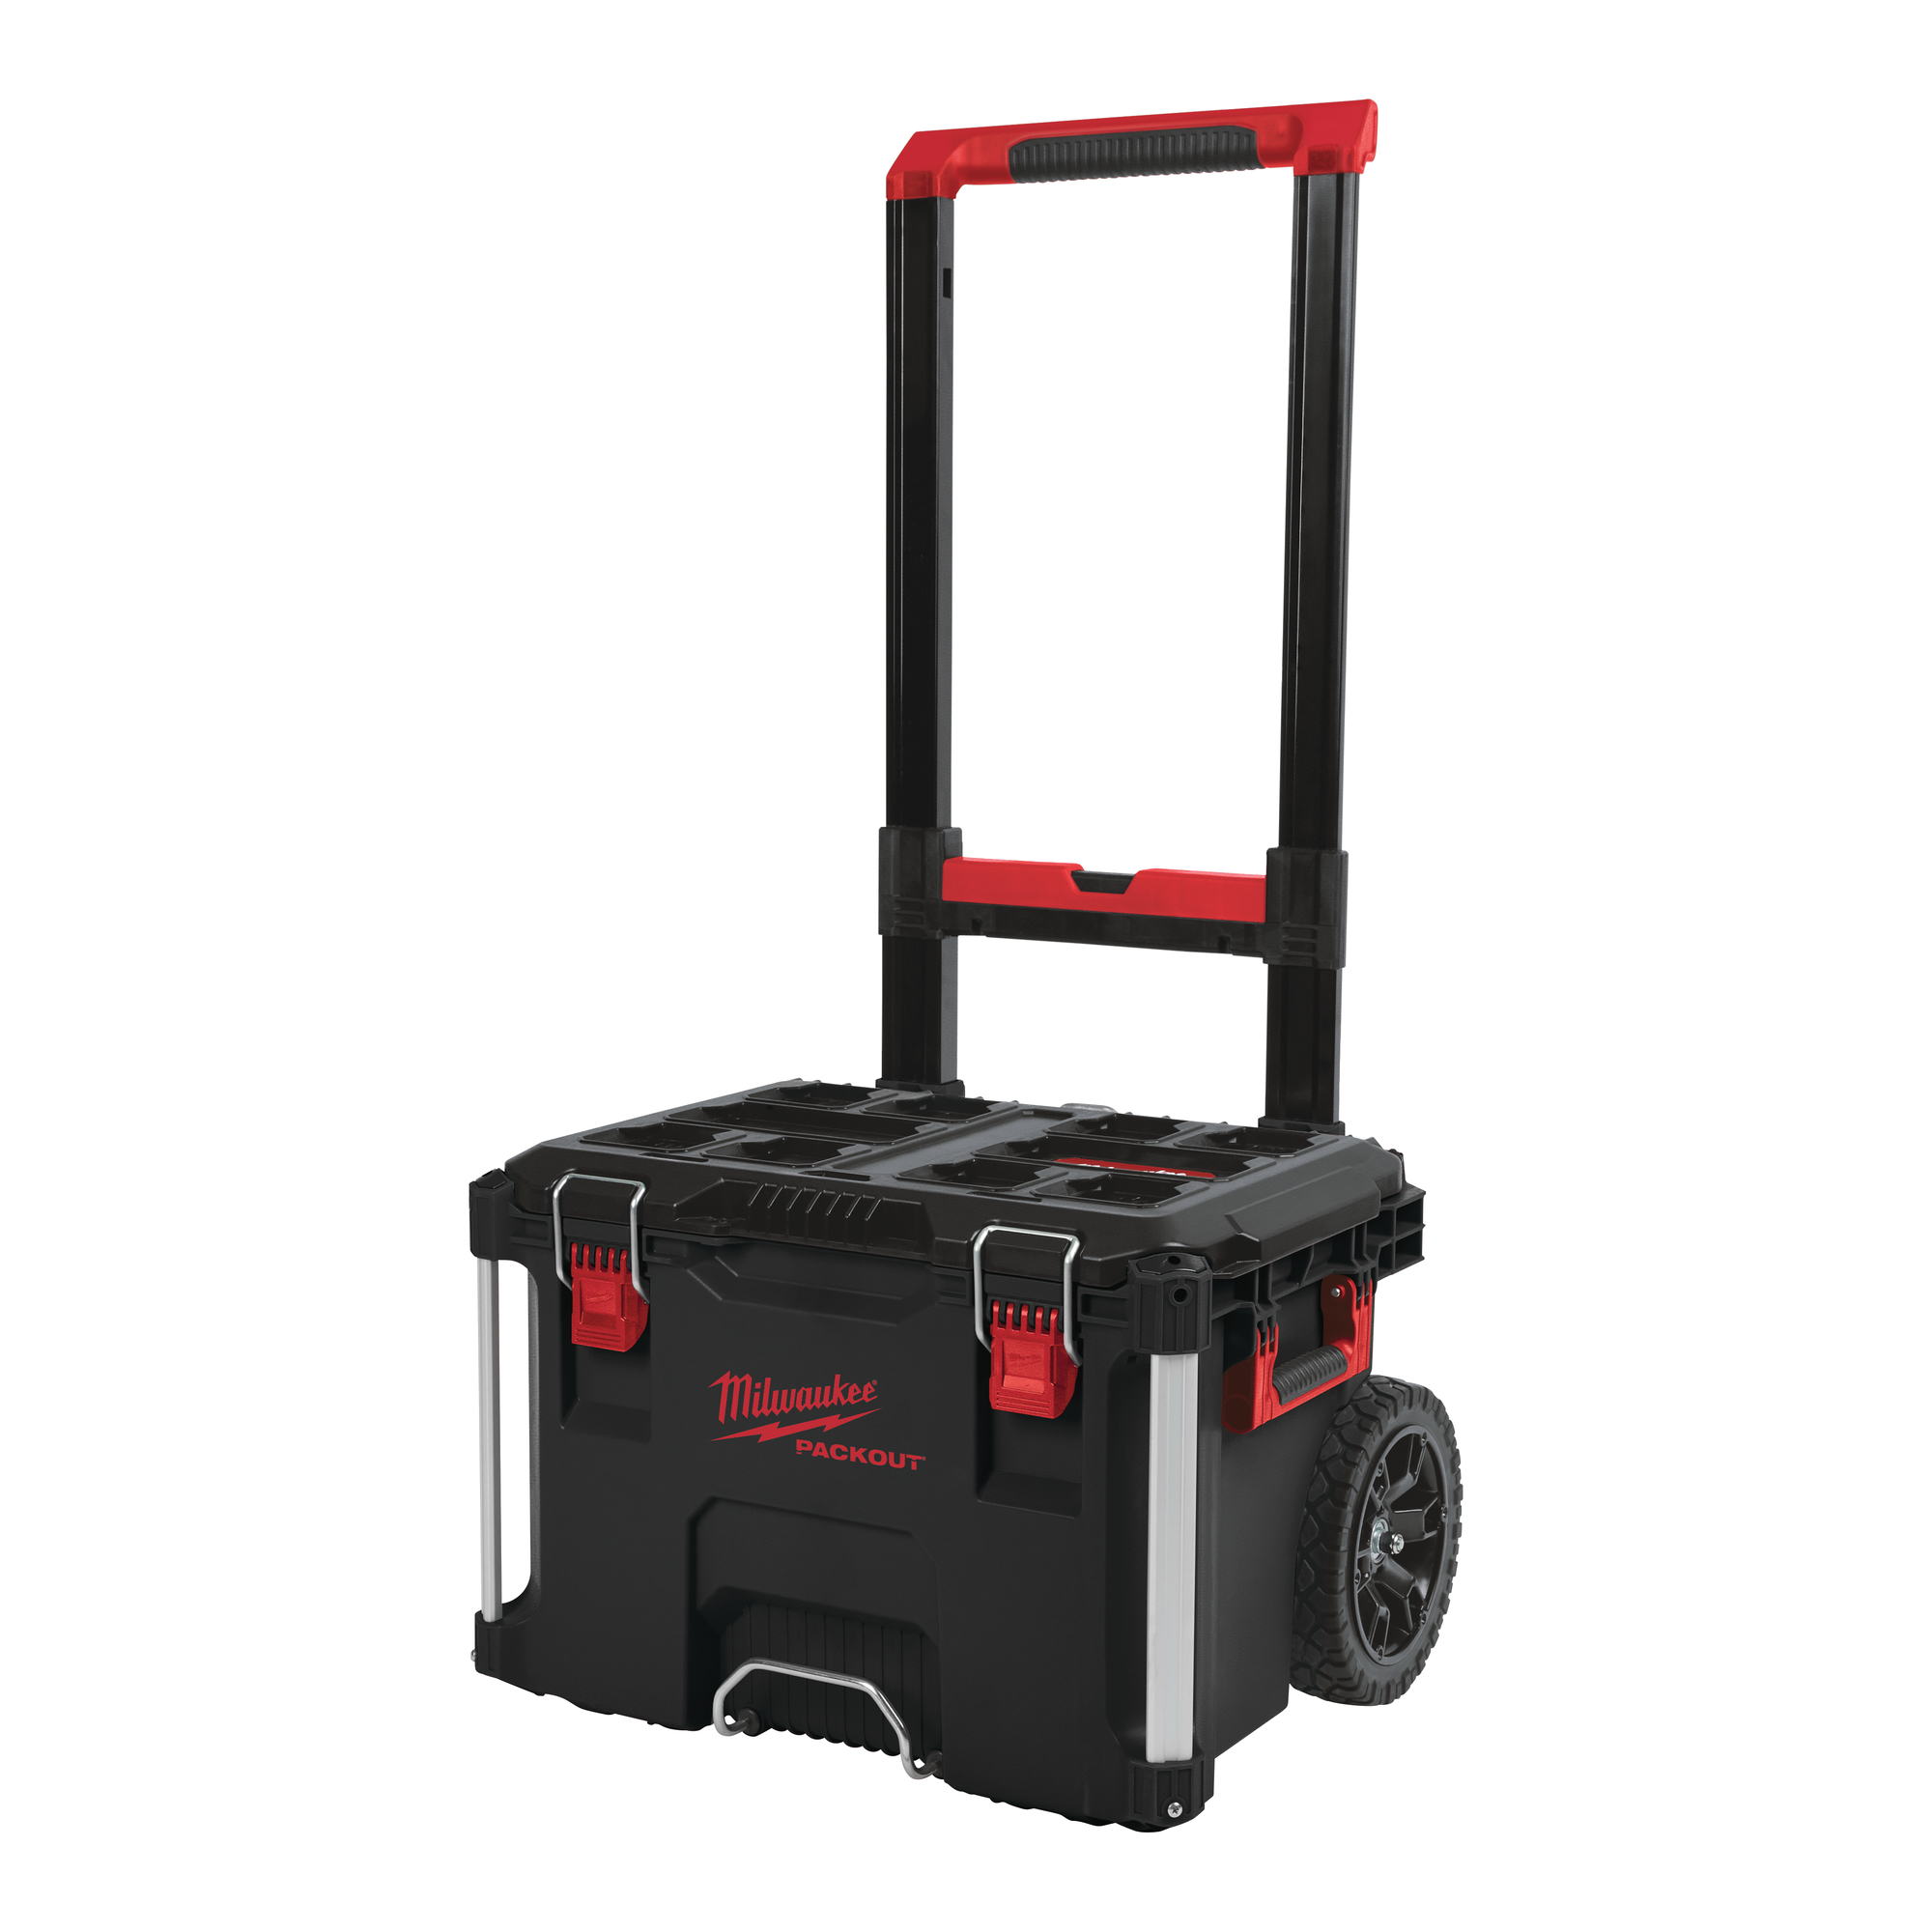 MILWAUKEE PACKOUT - PACKOUT TROLLEY BOX - 4932464078